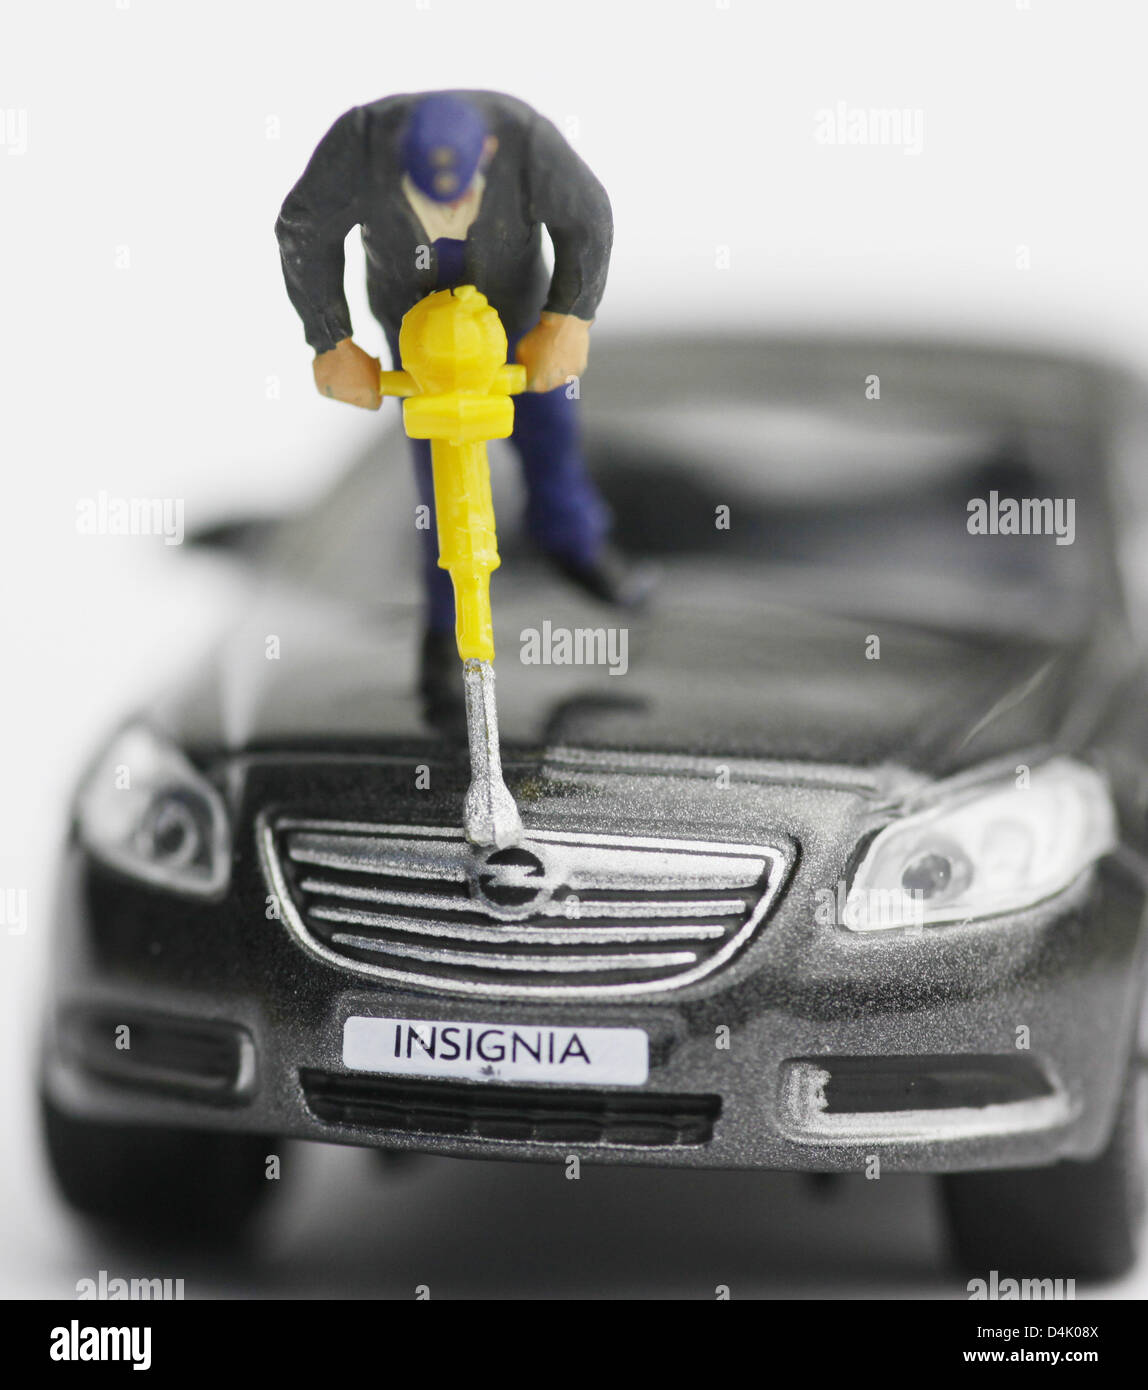 The picture dated 11 March 2009 shows a model railway figure with a jackhammer standing on the engine bonnet of - Stock Image